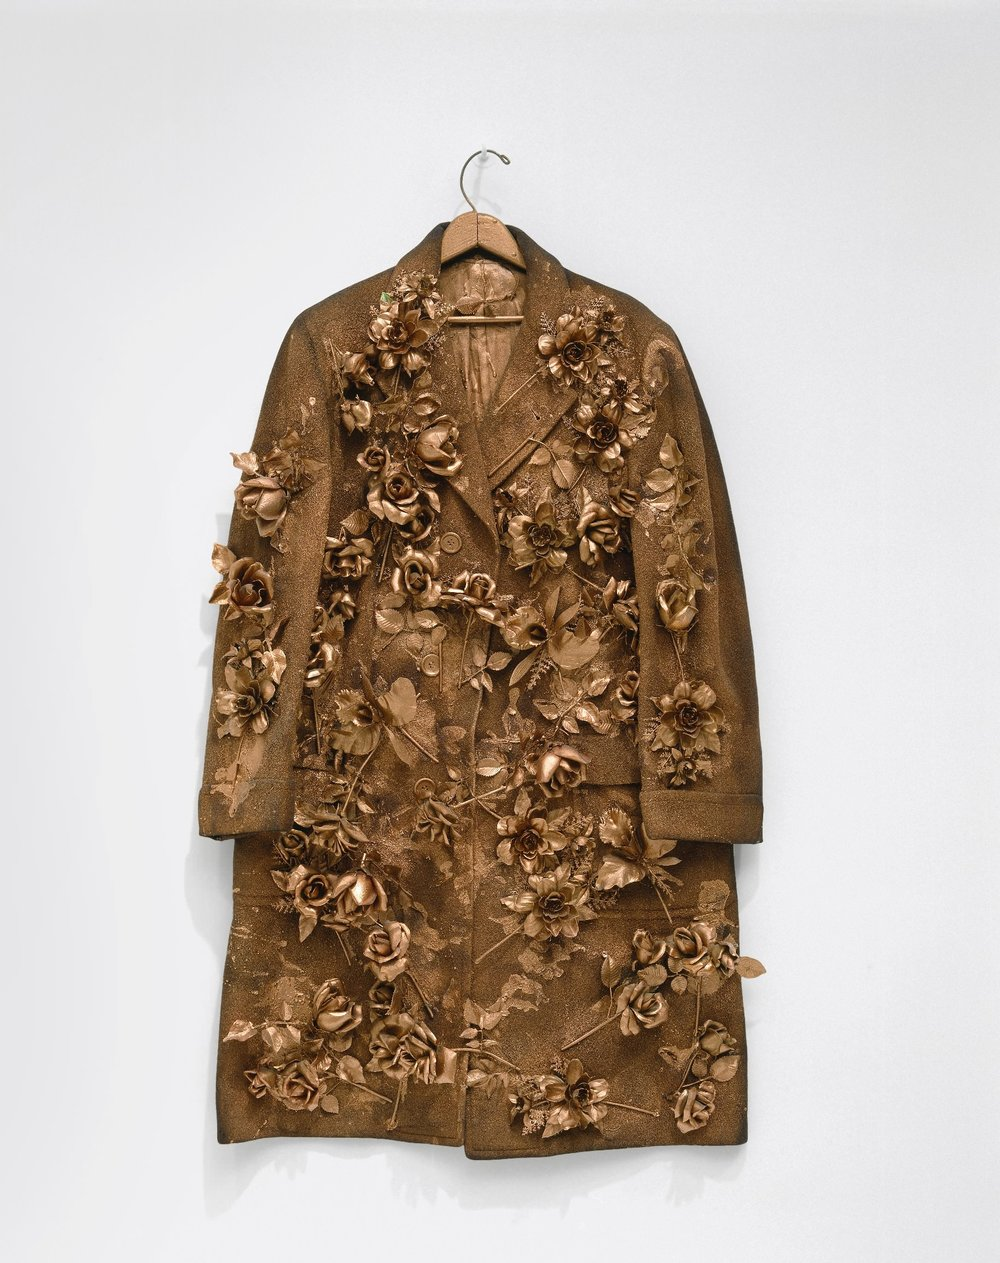 Yayoi Kusama   Flower Overcoat , 1964 (Cloth overcoat, plastic flowers, metallic paint, and wood hanger) Hirshhorn Museum and Sculpture Garden, Washington, DC. Joseph H. Hirshhorn Bequest and Purchase Funds, 1998 (98.38). © Yayoi Kusama Photo credit: Lee Stalsworth